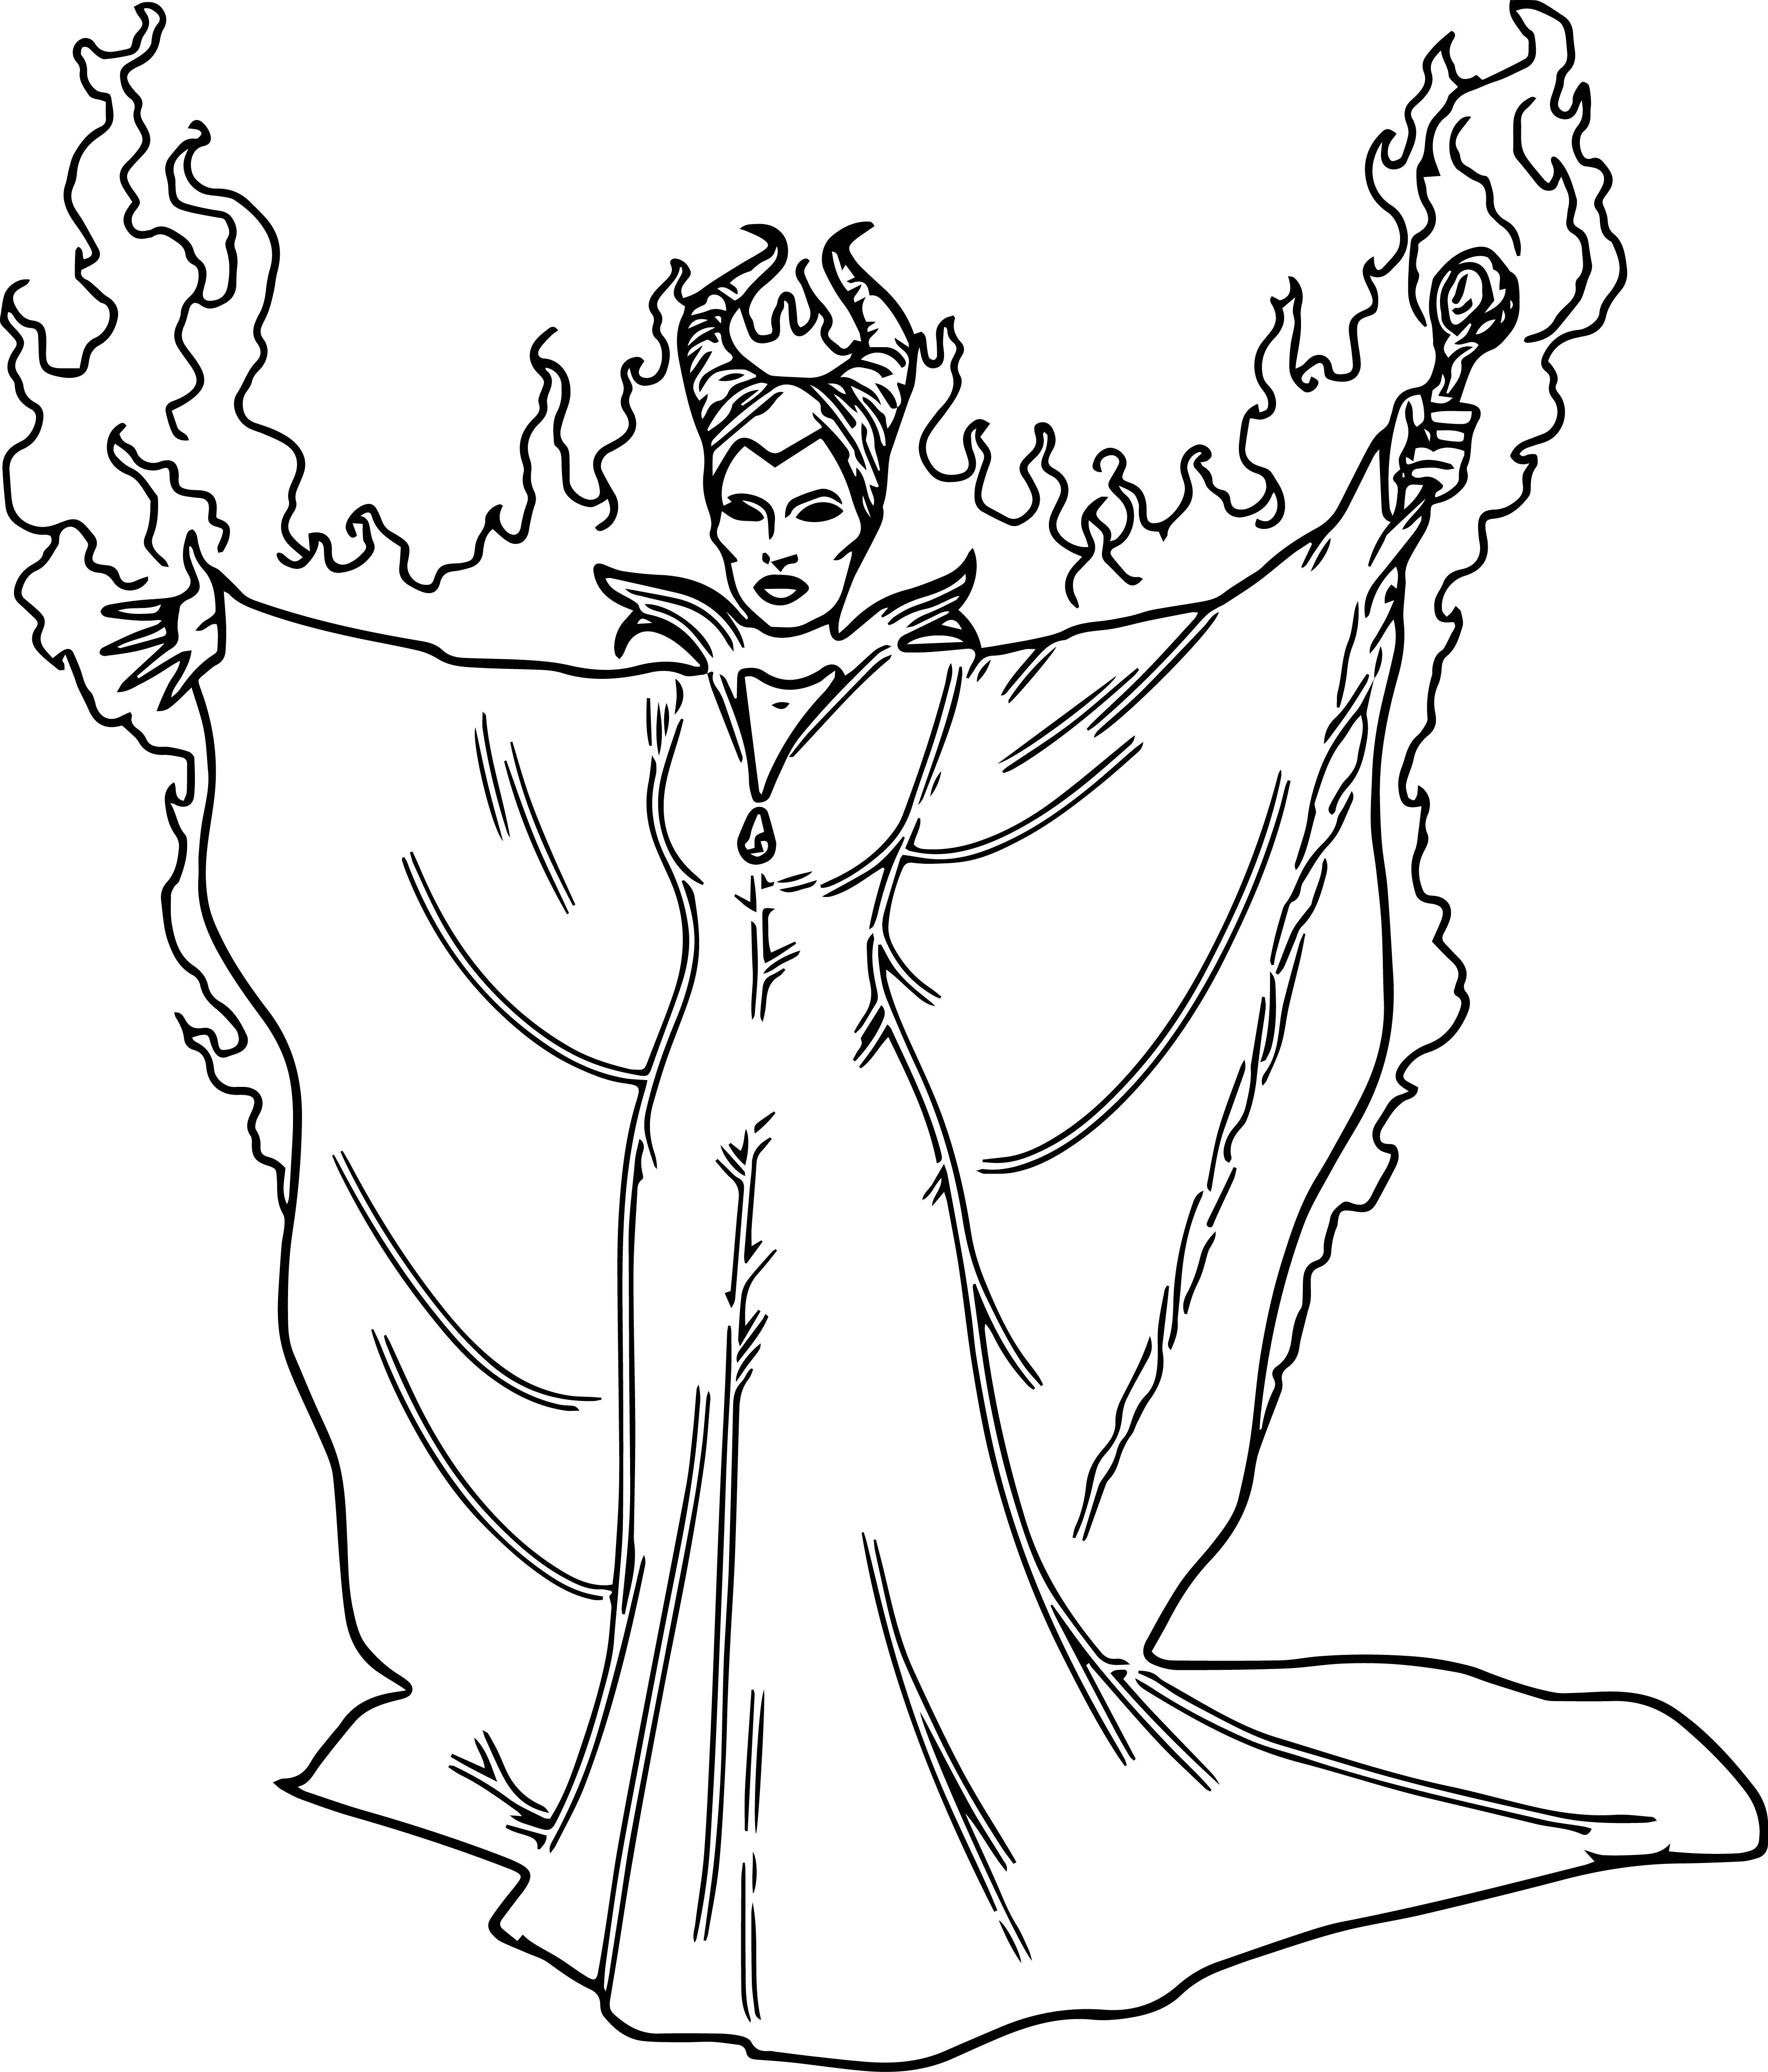 Disney Maleficent Coloring Pages Wecoloringpage Coloring Pages